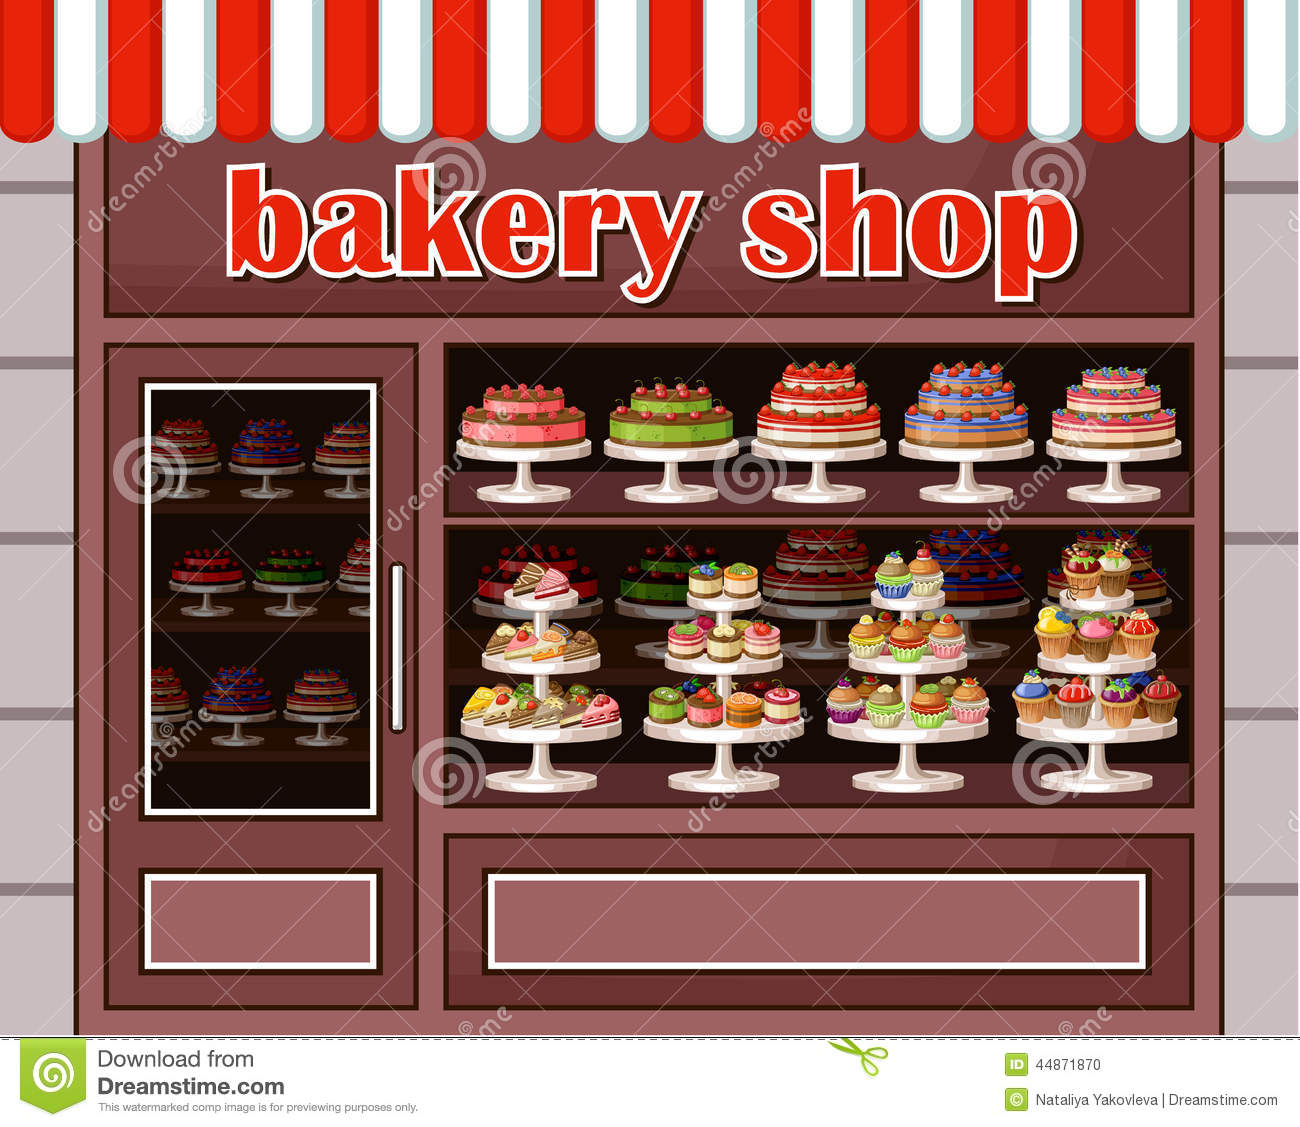 Bakery clipart bakery window. Store of sweets and